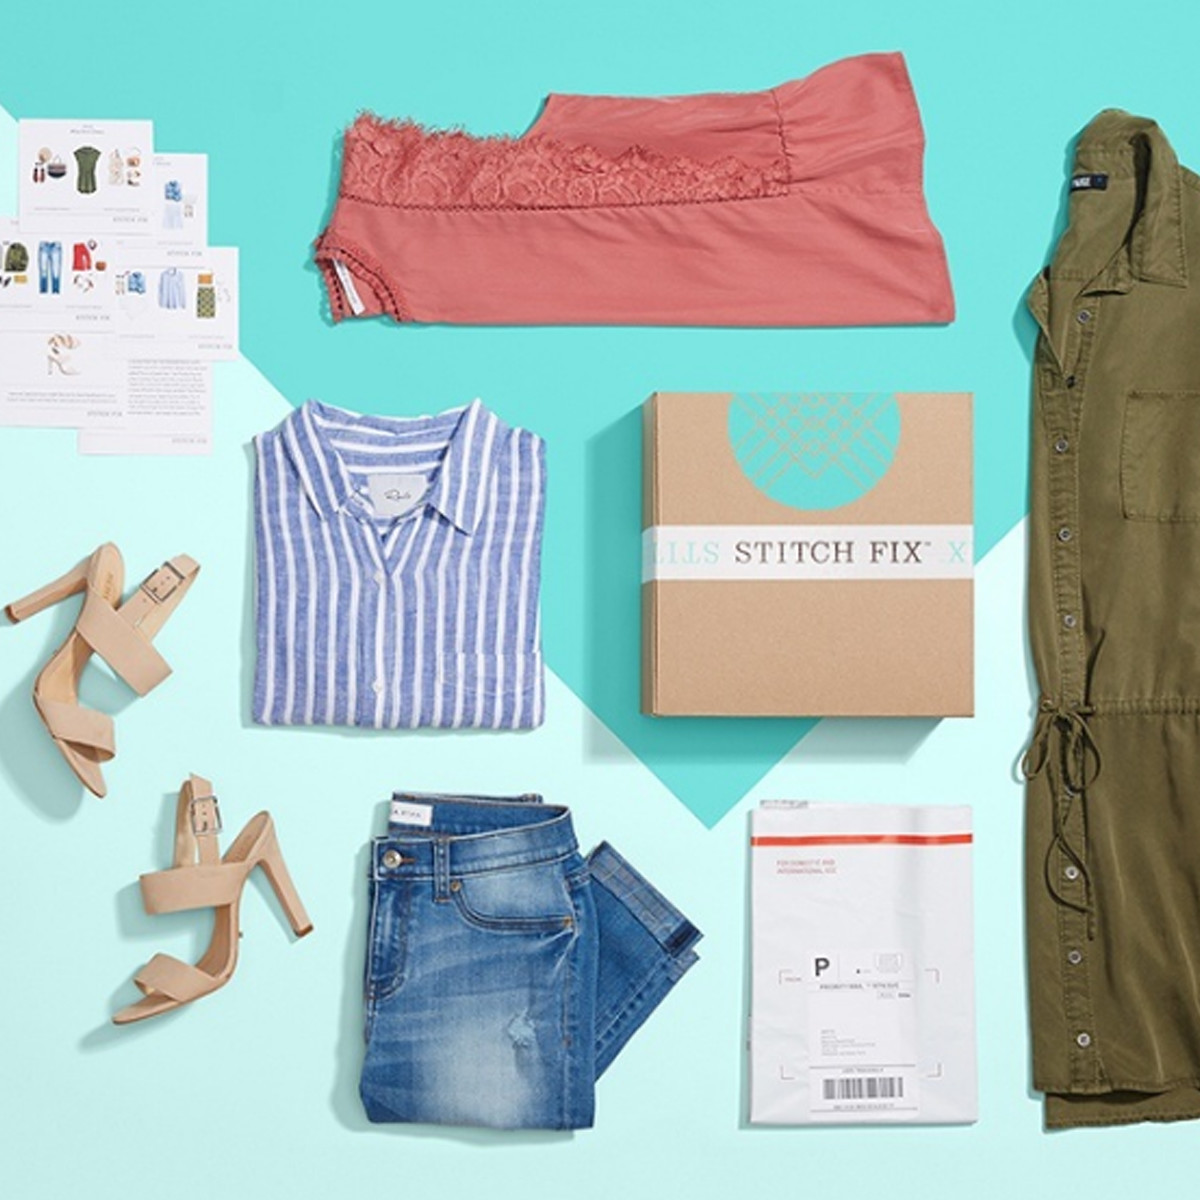 Stitch Fix photo